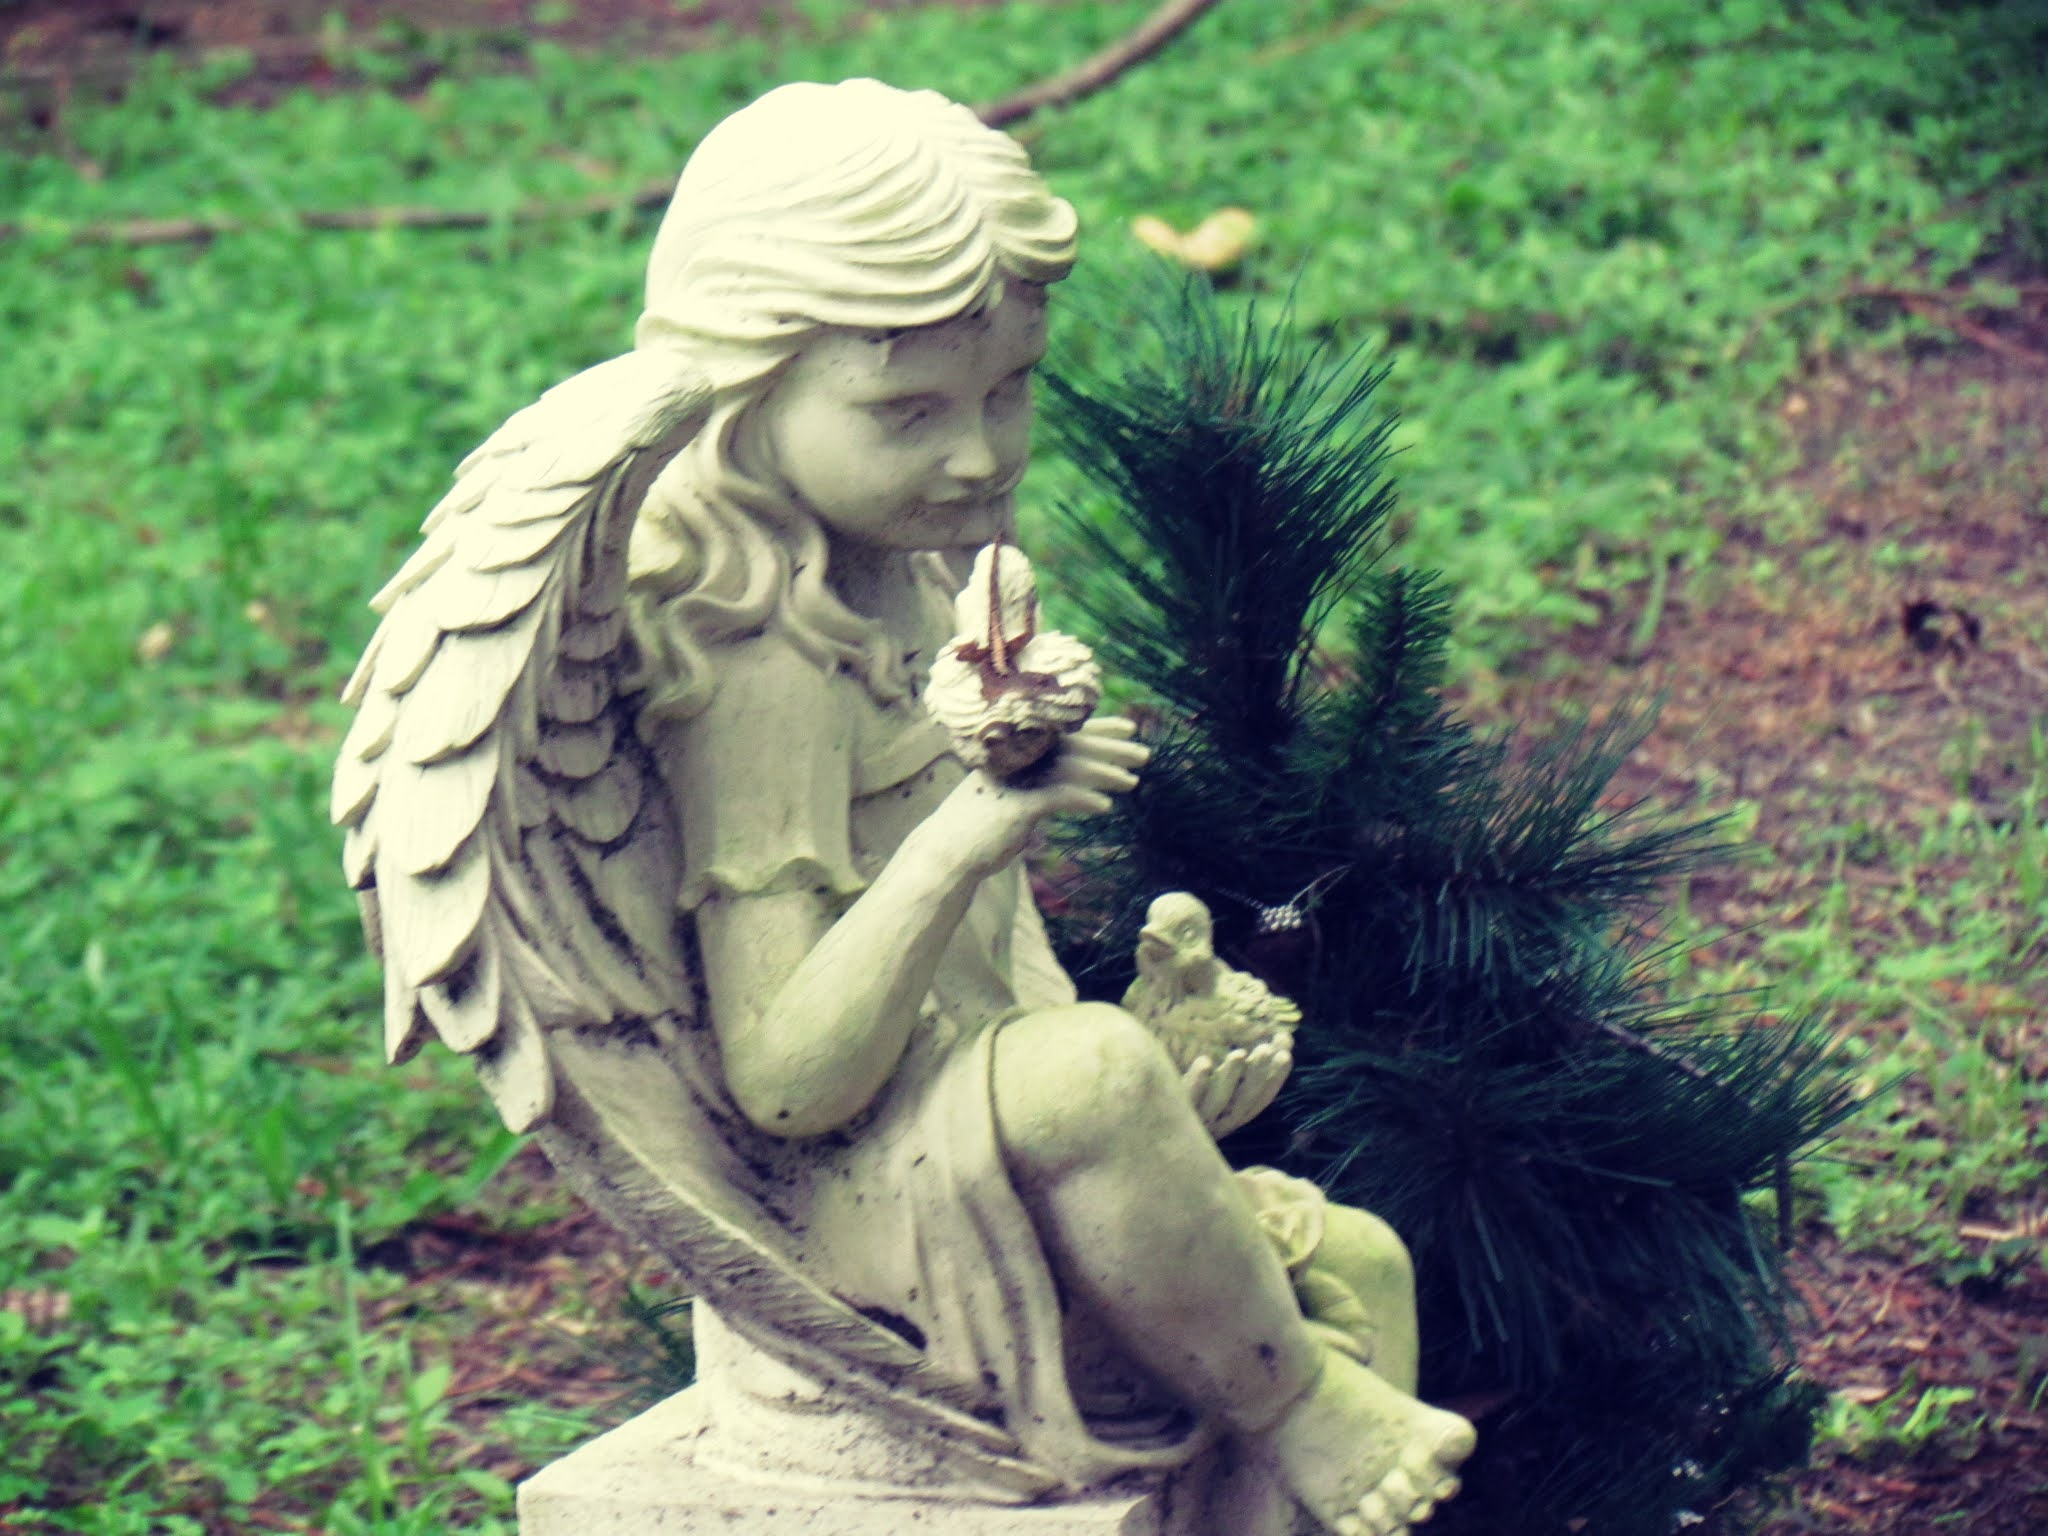 A cemetery with a cute angel statue figurine with a tiny Christmas tree pine and graveyard dirt spell uses and properties